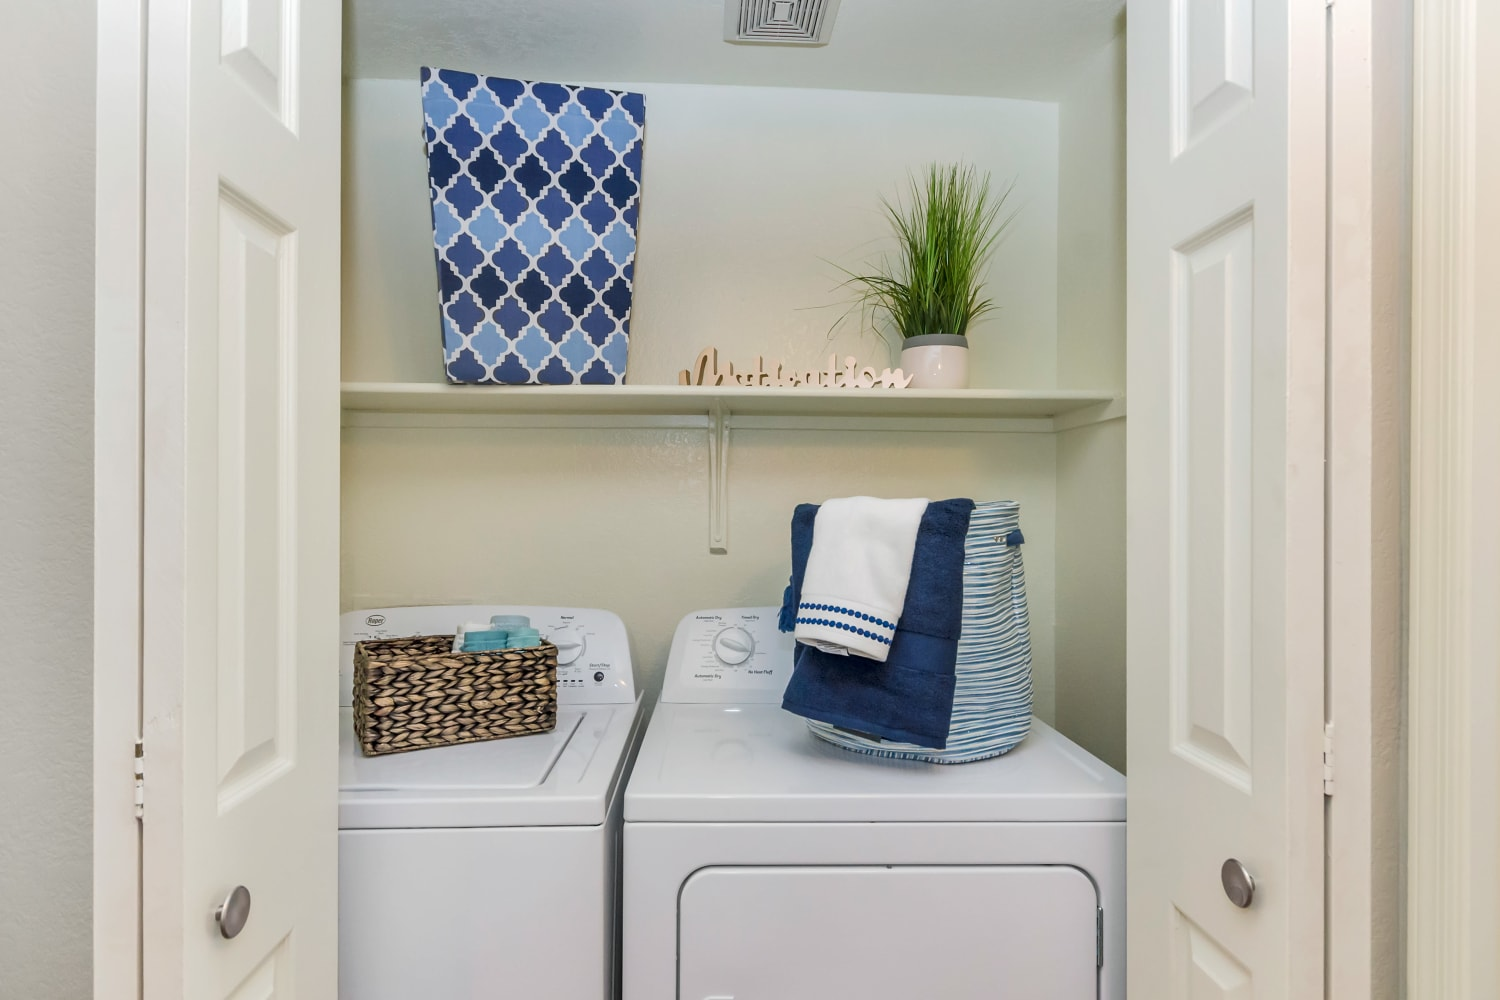 Laundry room with washer and dryer at Alcove at the Islands in Gilbert, Arizona